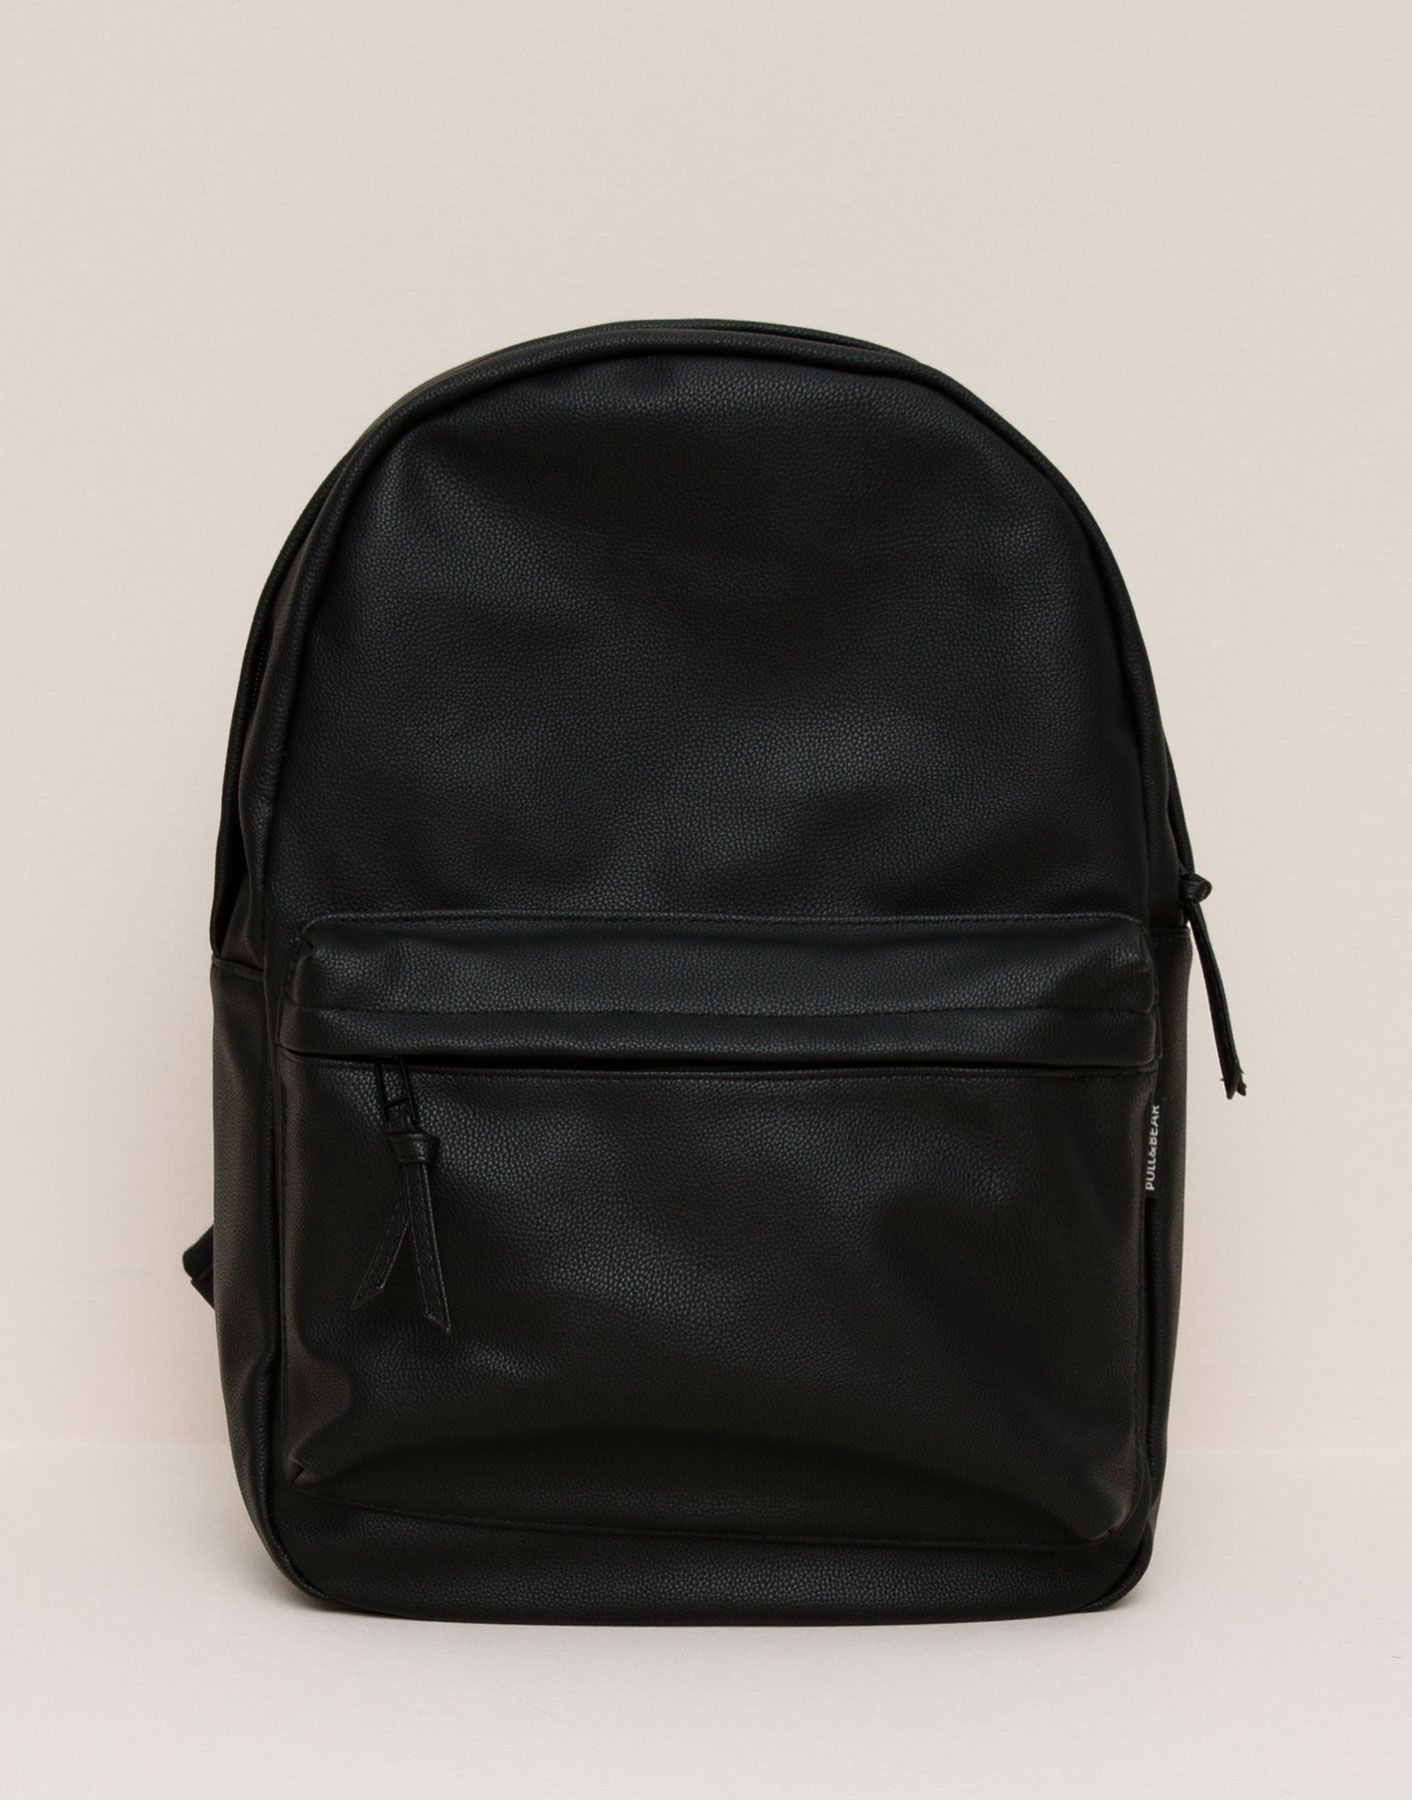 FAUX LEATHER BACKPACK - BAGS   WALLETS - MAN - PULL BEAR Indonesia ... 8bbd9274dc3f7